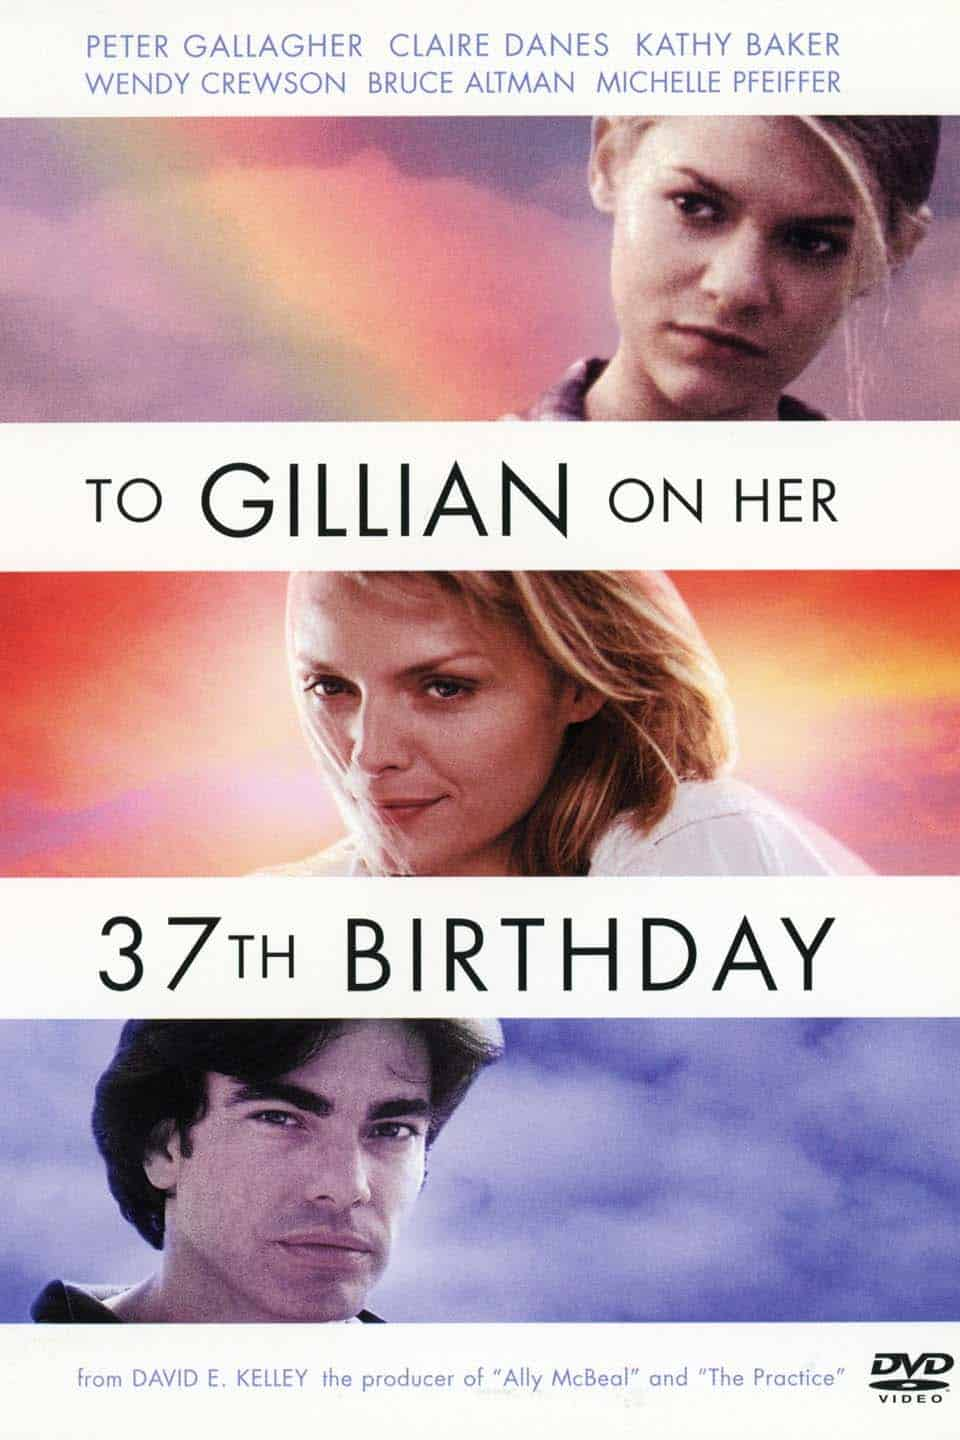 To Gillian on Her 37th Birthday, 1996